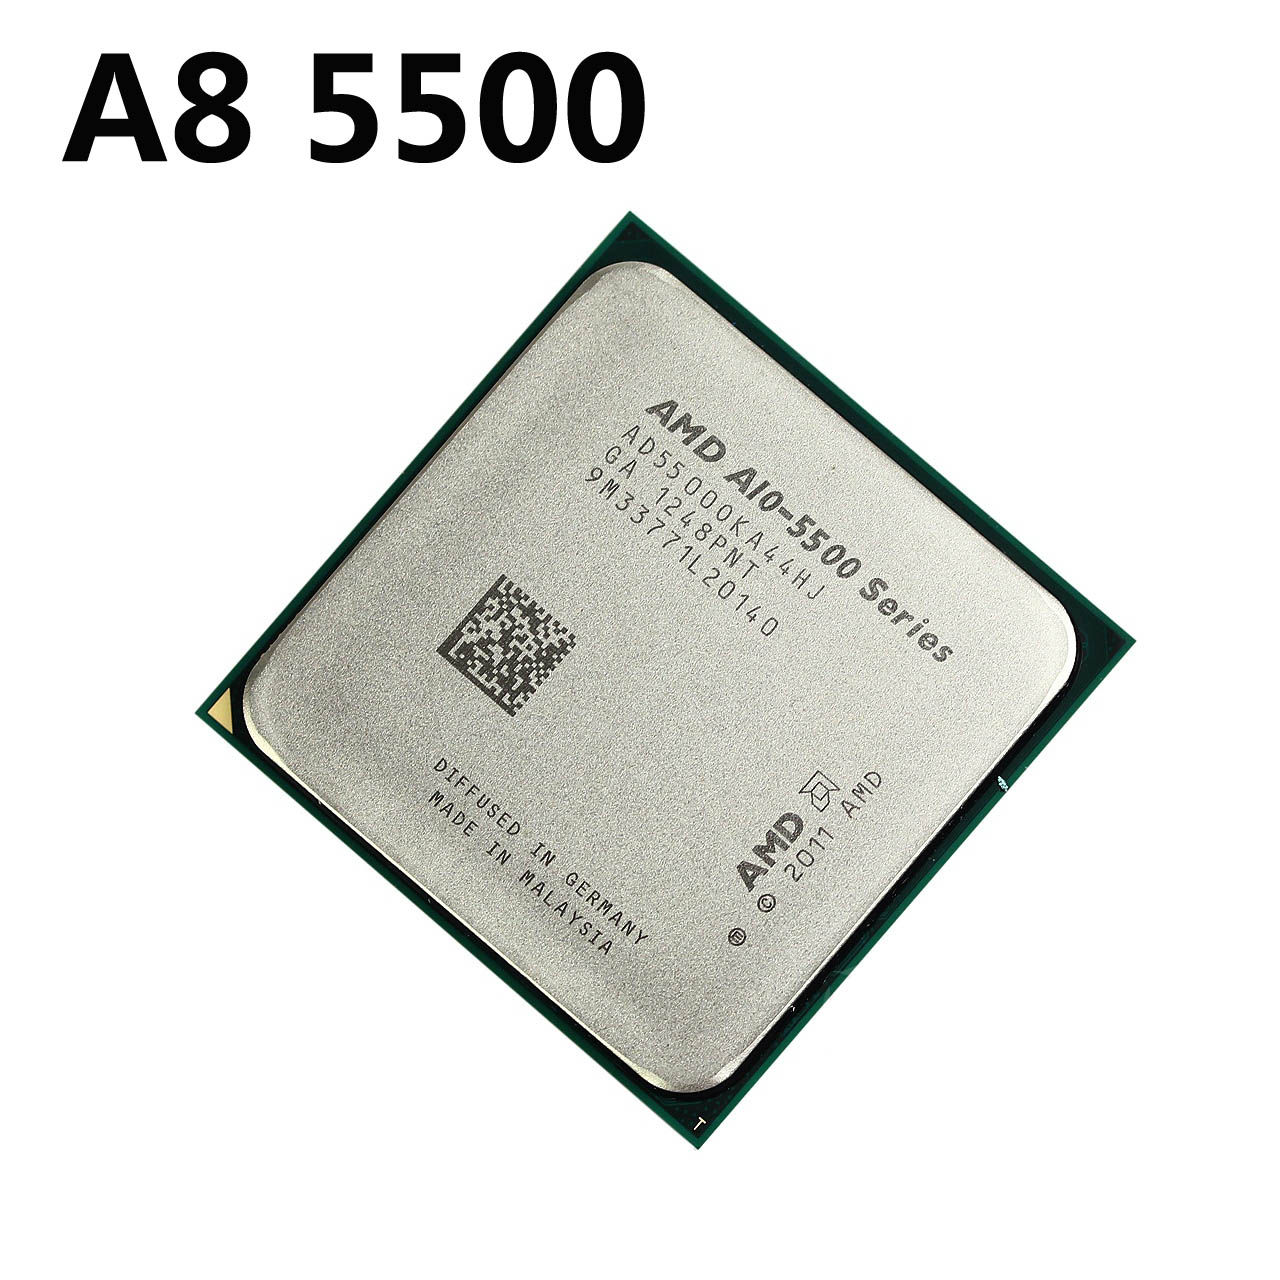 Процессор Amd A8-5500 CPU Apu CPU 65W free shipping amd a8 3870k fm1 3 0ghz 4mb 100w cpu processor fm1 scrattered pieces a8 3870 apu integrated graphics 3870